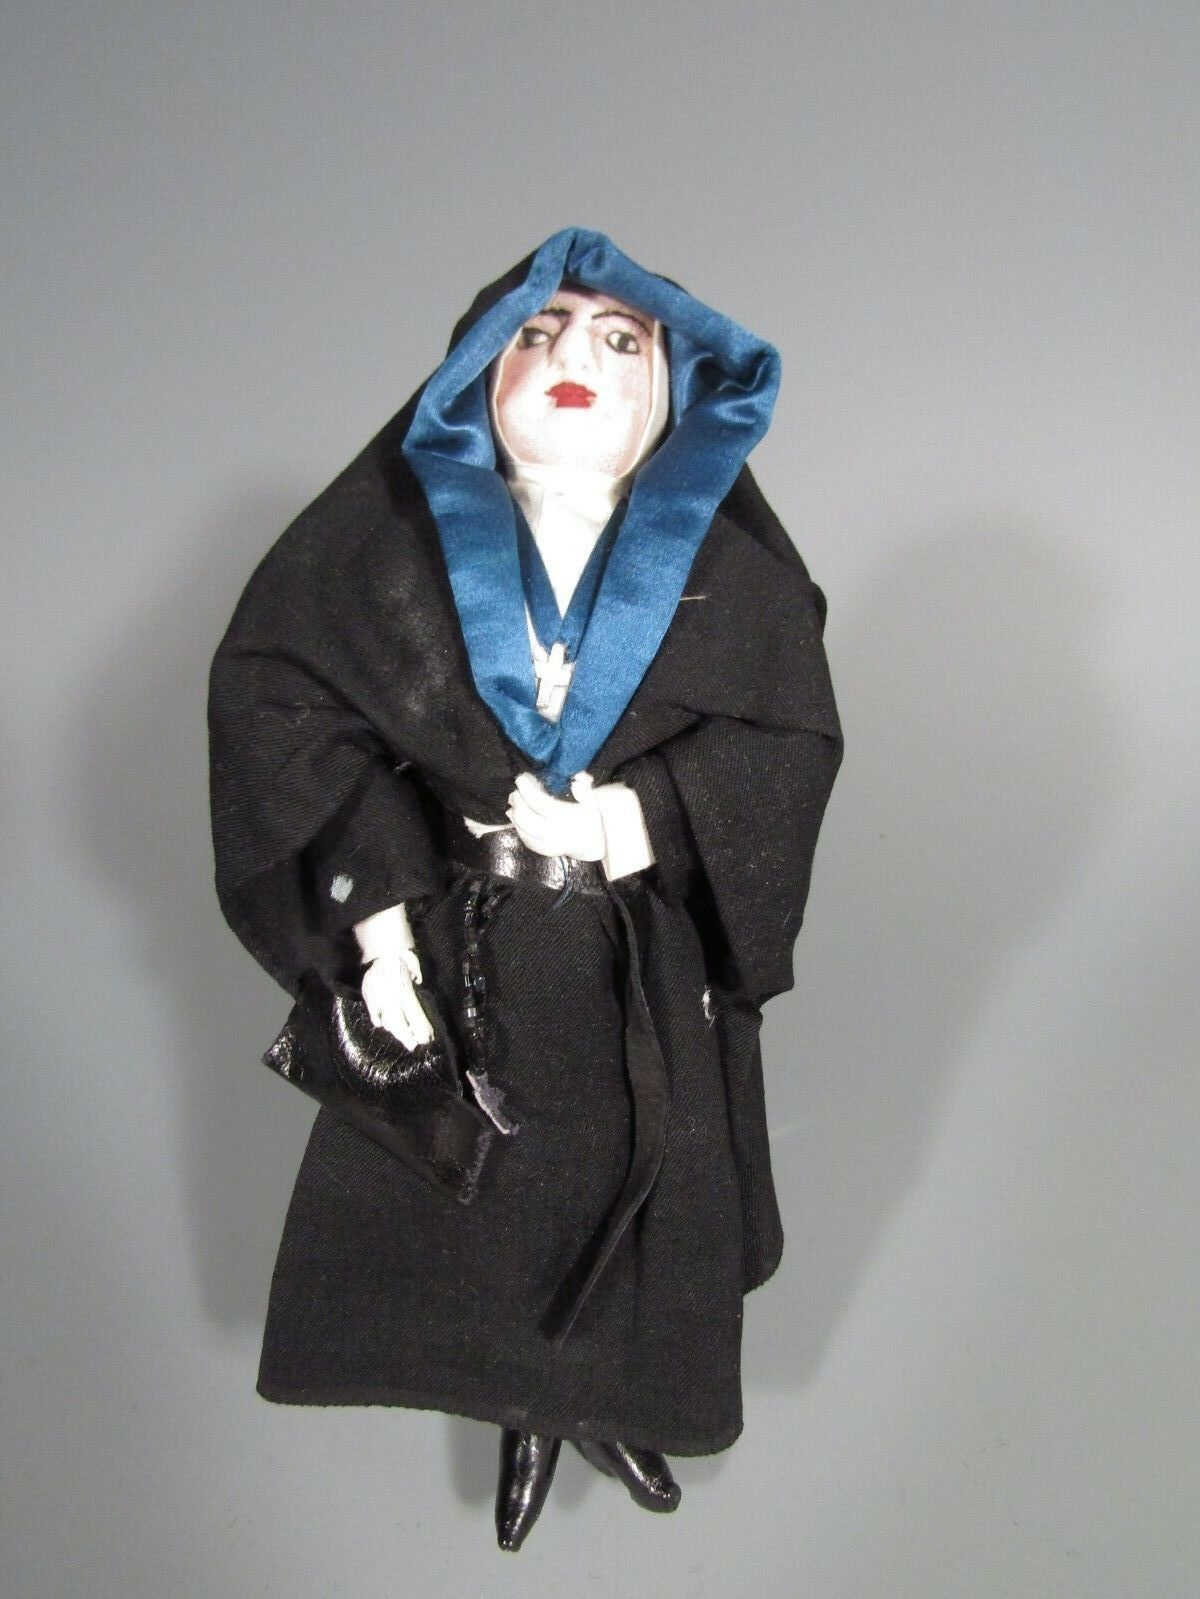 Fine Latin Central or South American Doll Figure of a Nun ca. 19-20th c.